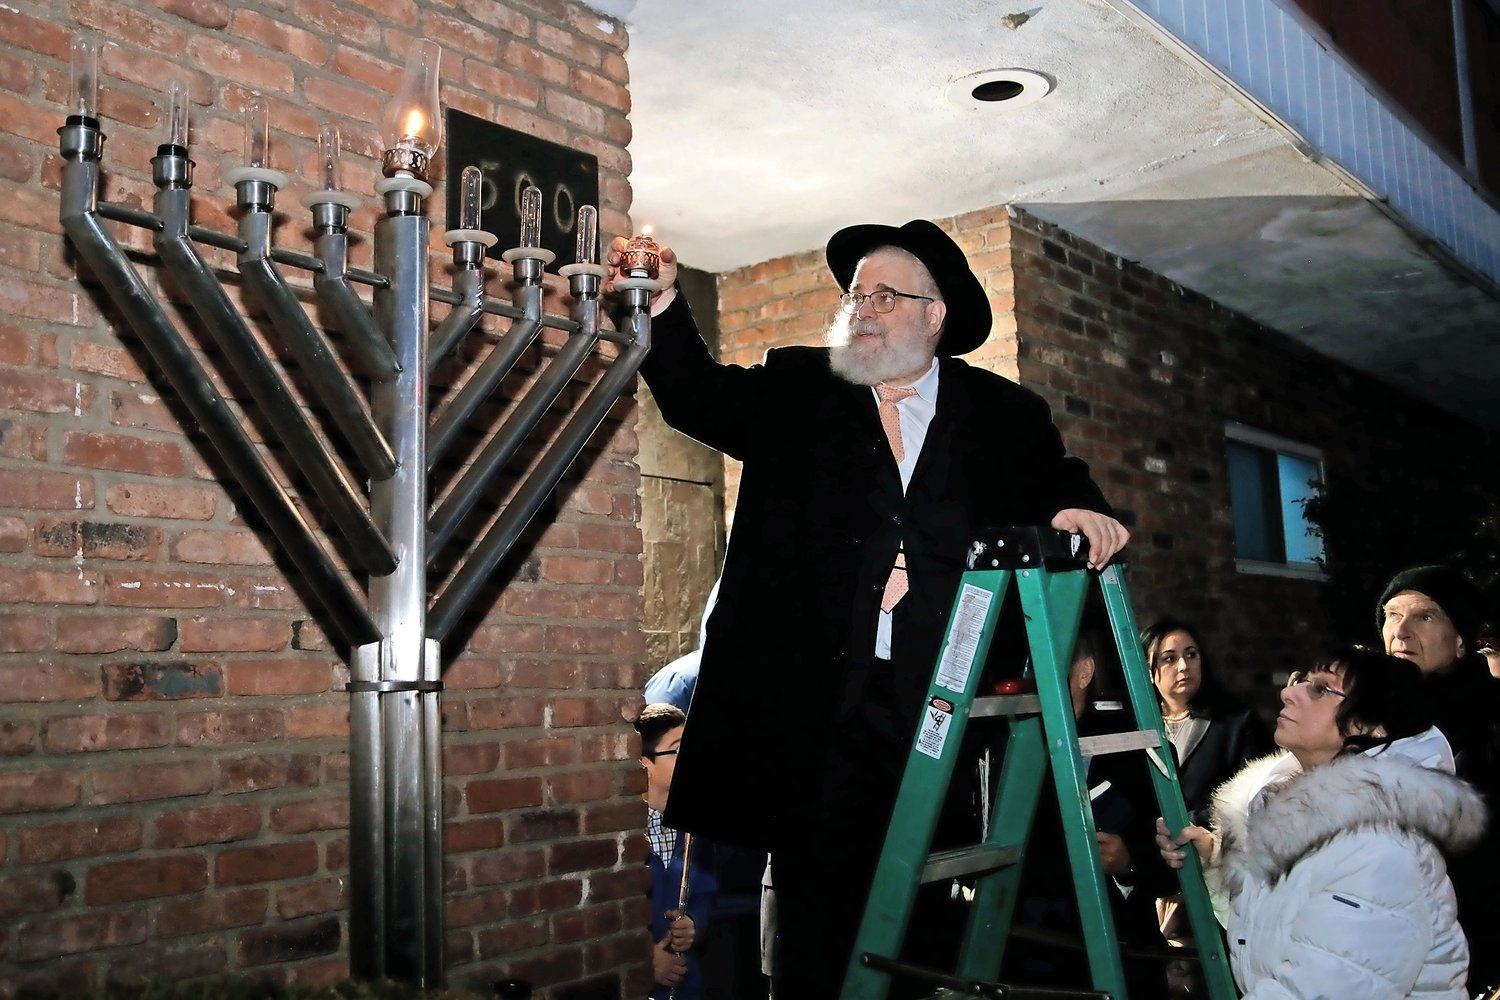 Rabbi Chaim Blachman, of the Elmont Jewish Center, lit the first candle of the menorah on Dec. 22.